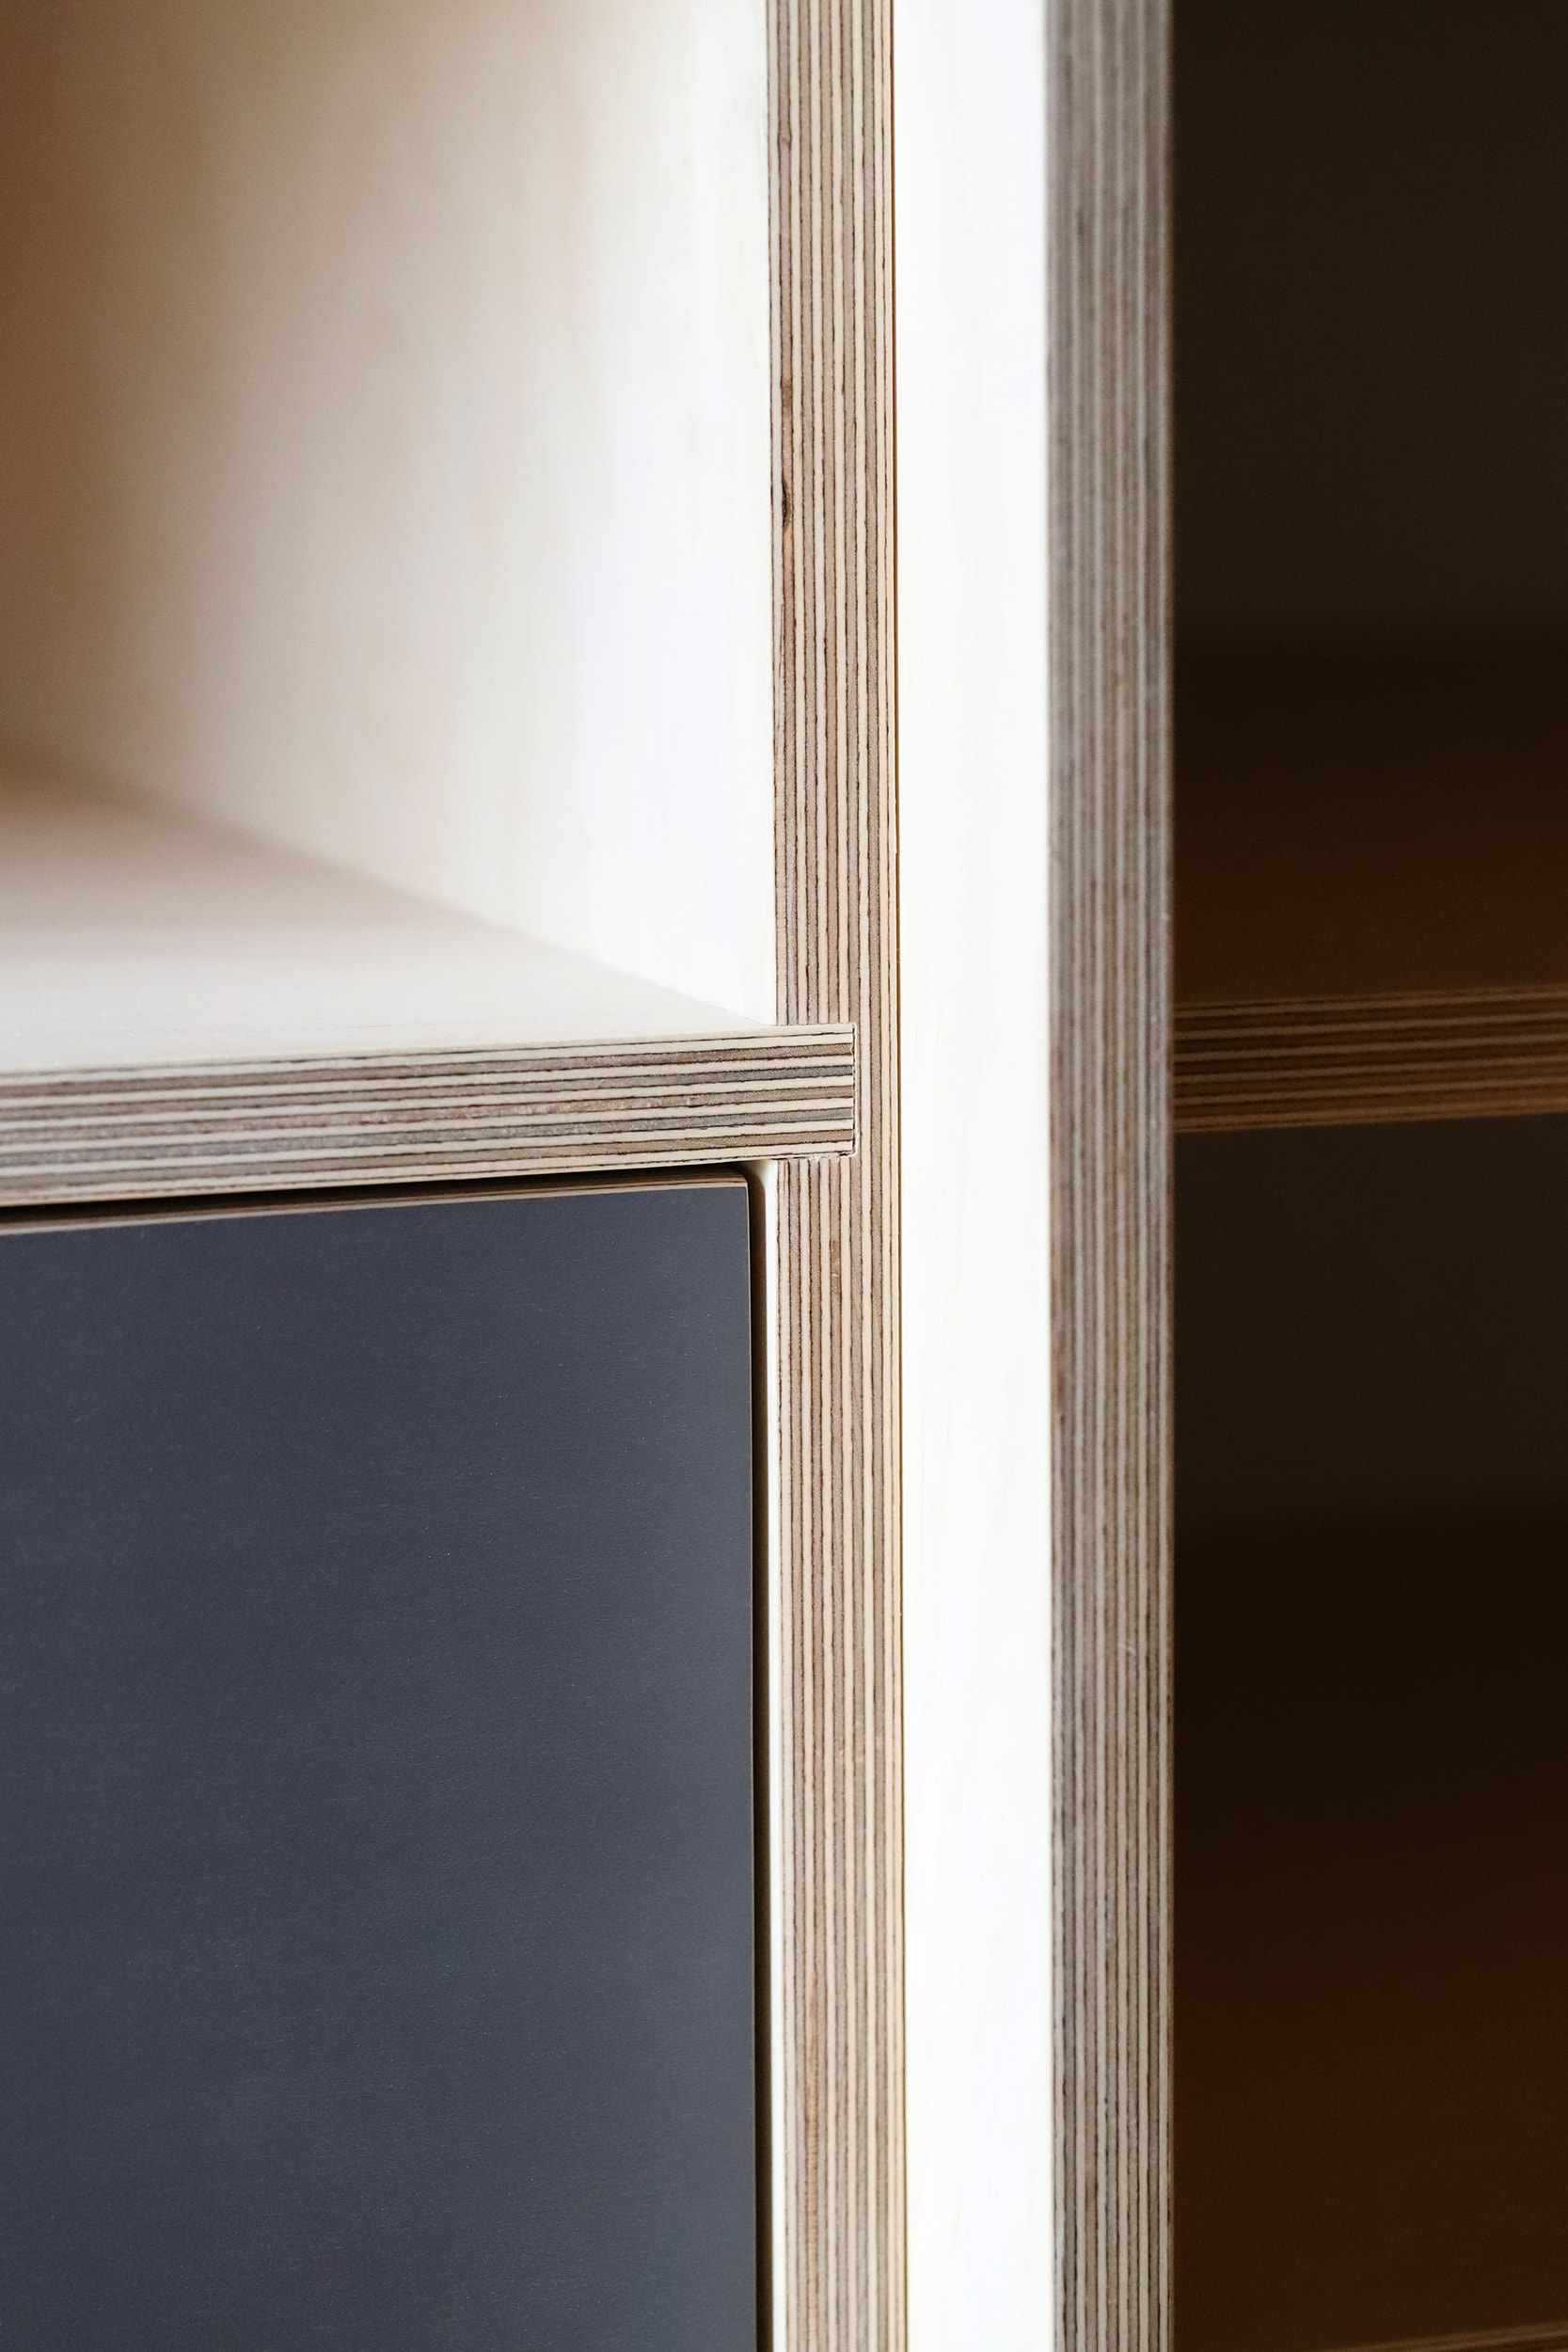 A close up detail of the plywood joints.